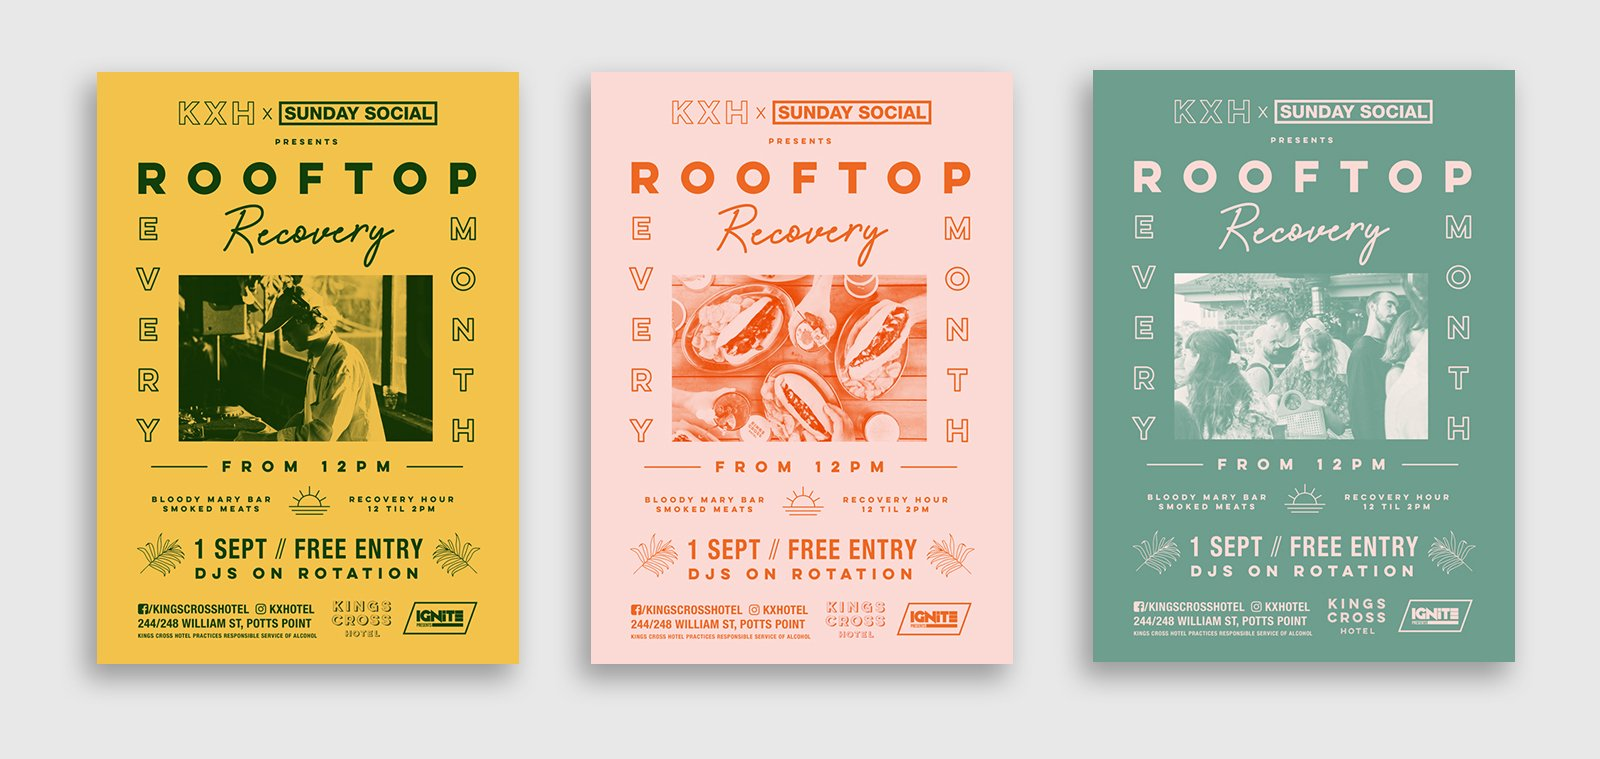 three posters designs for the rooftop recovery sessions at the kings cross hotel